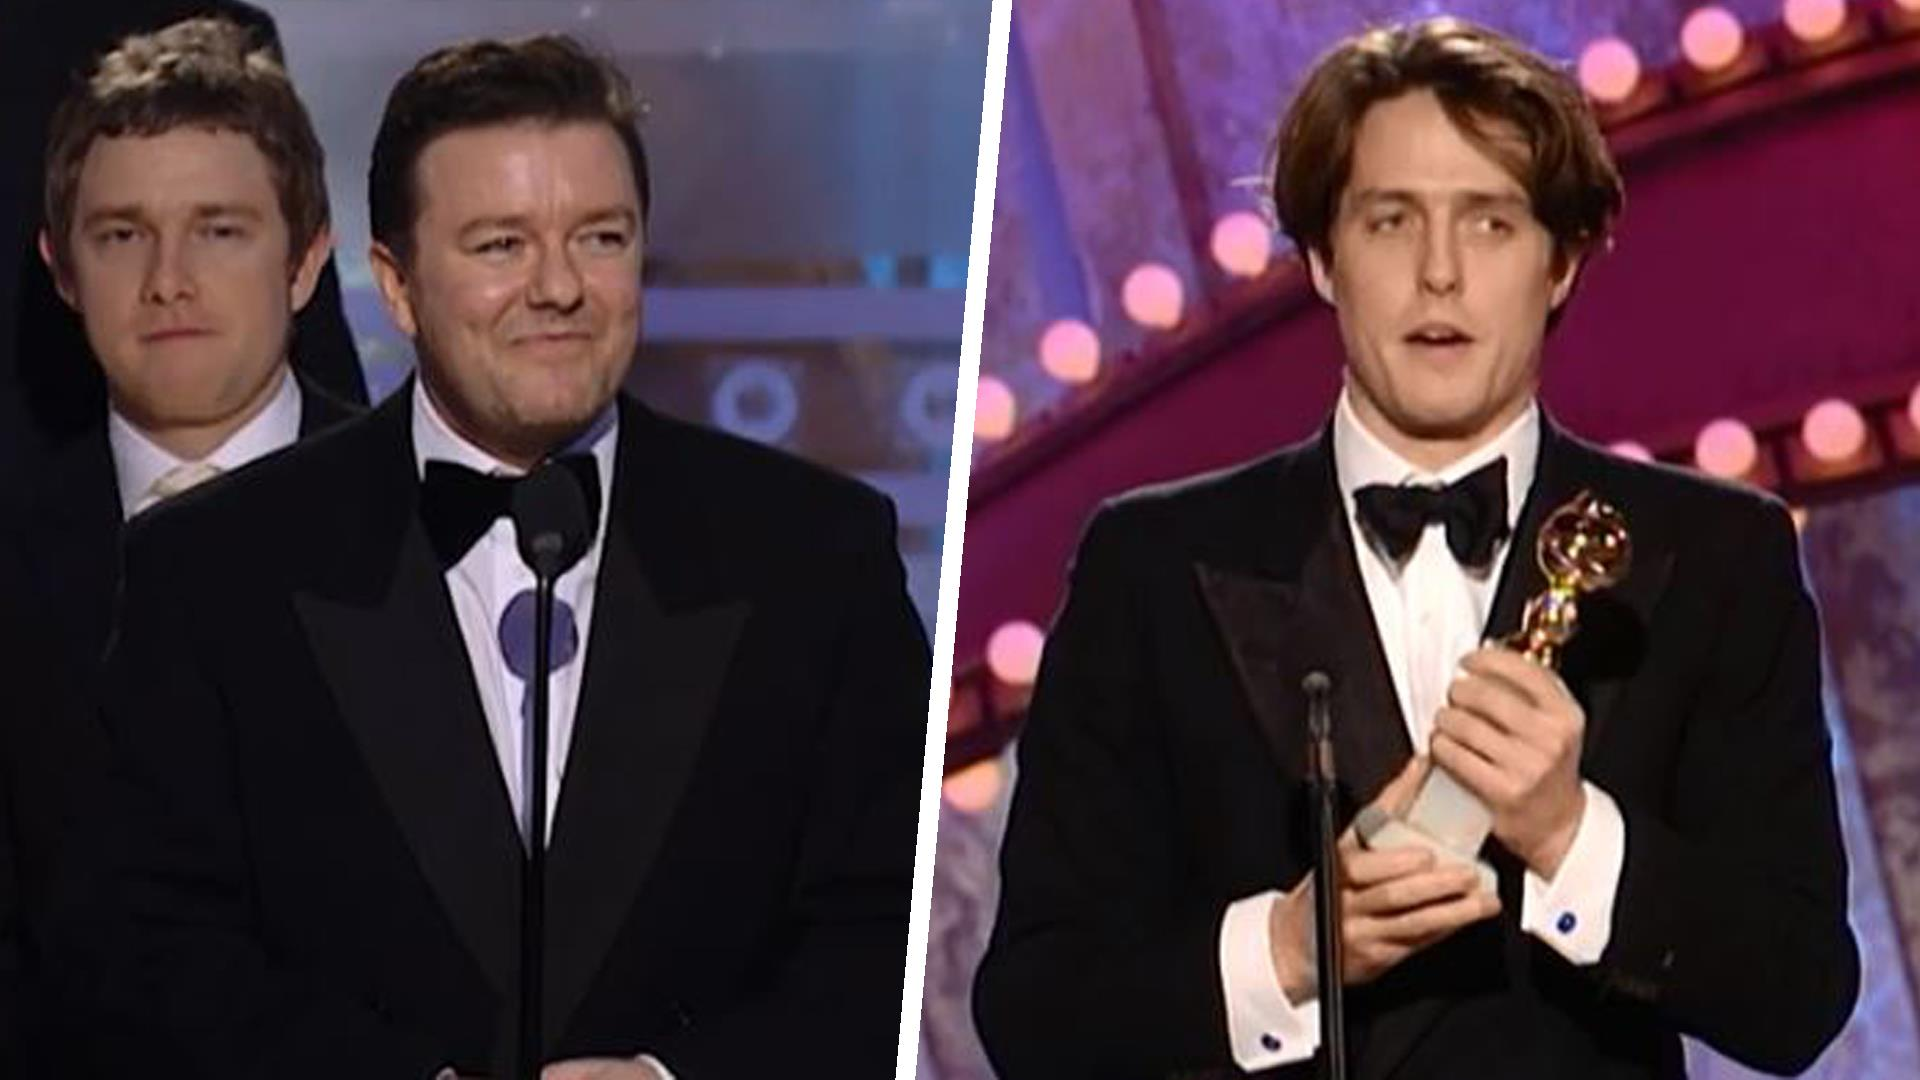 Robin Williams Son Zak Honors His Late Father Check out our valerie velardi selection for the very best in unique or custom, handmade pieces from our shops. the funniest golden globes acceptance speeches of the past 25 years